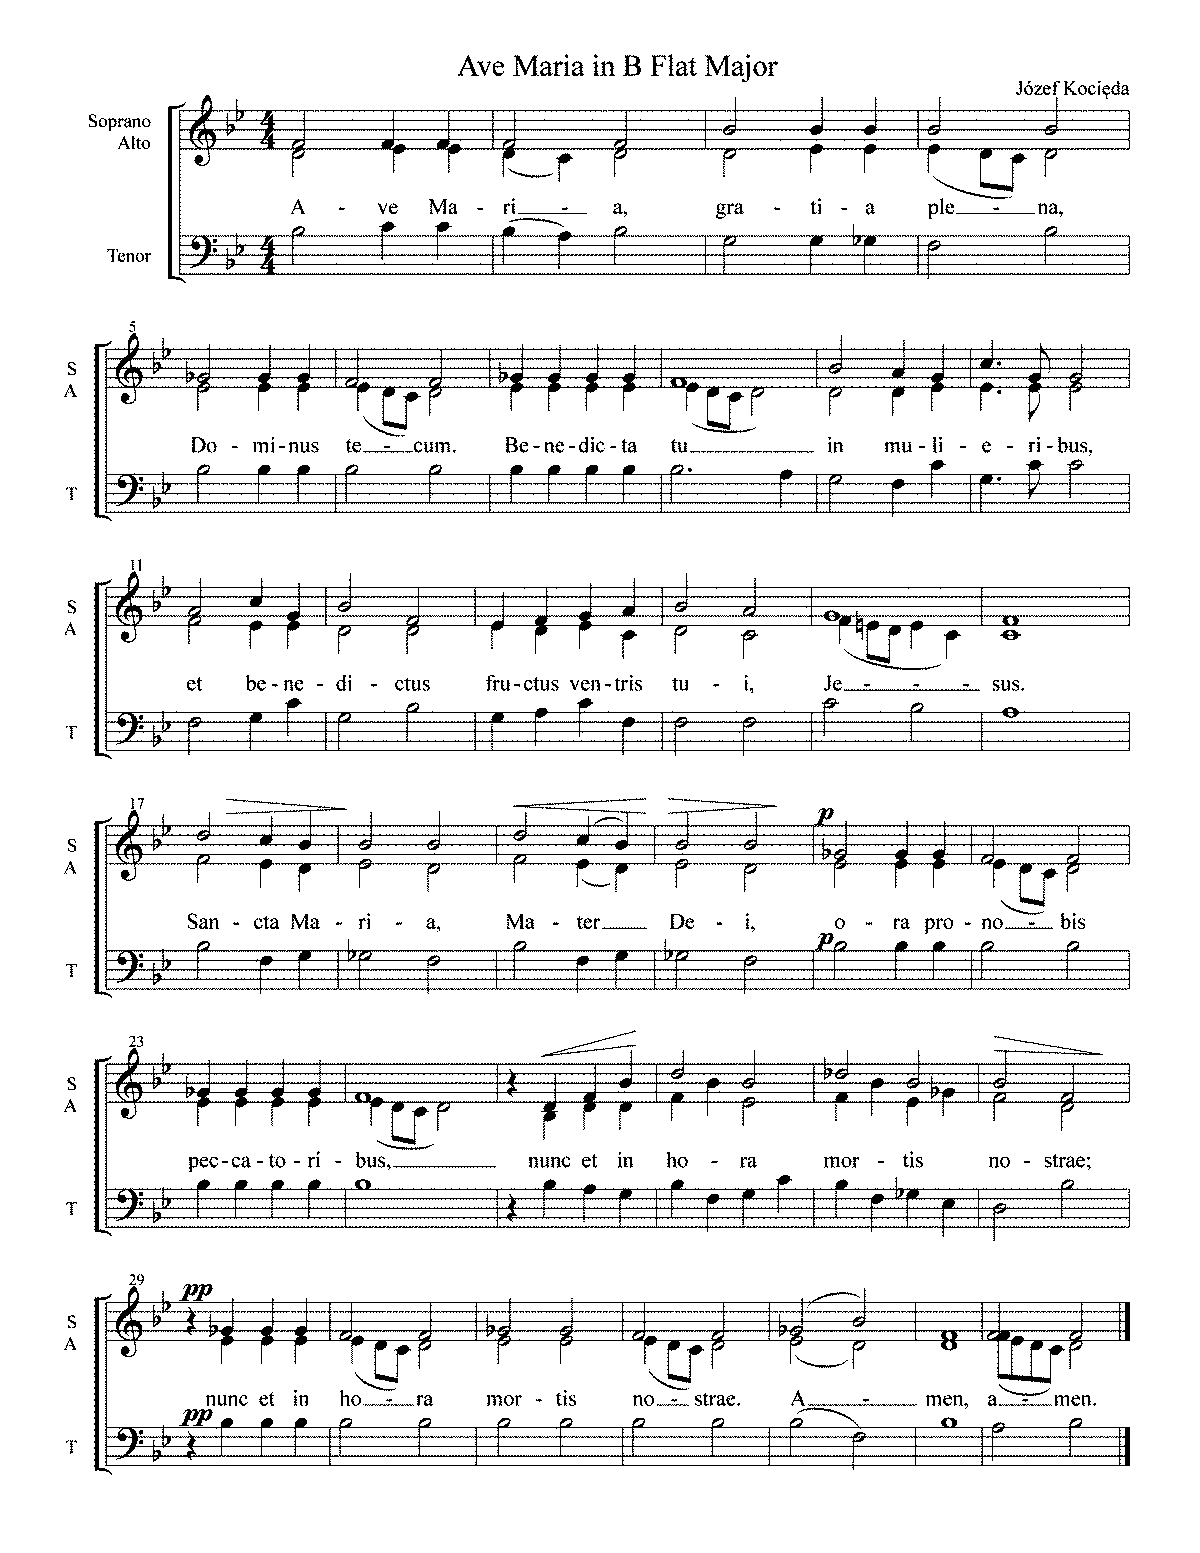 PMLP629774-Ave Maria in B Flat Major - Józef Kocieda.pdf